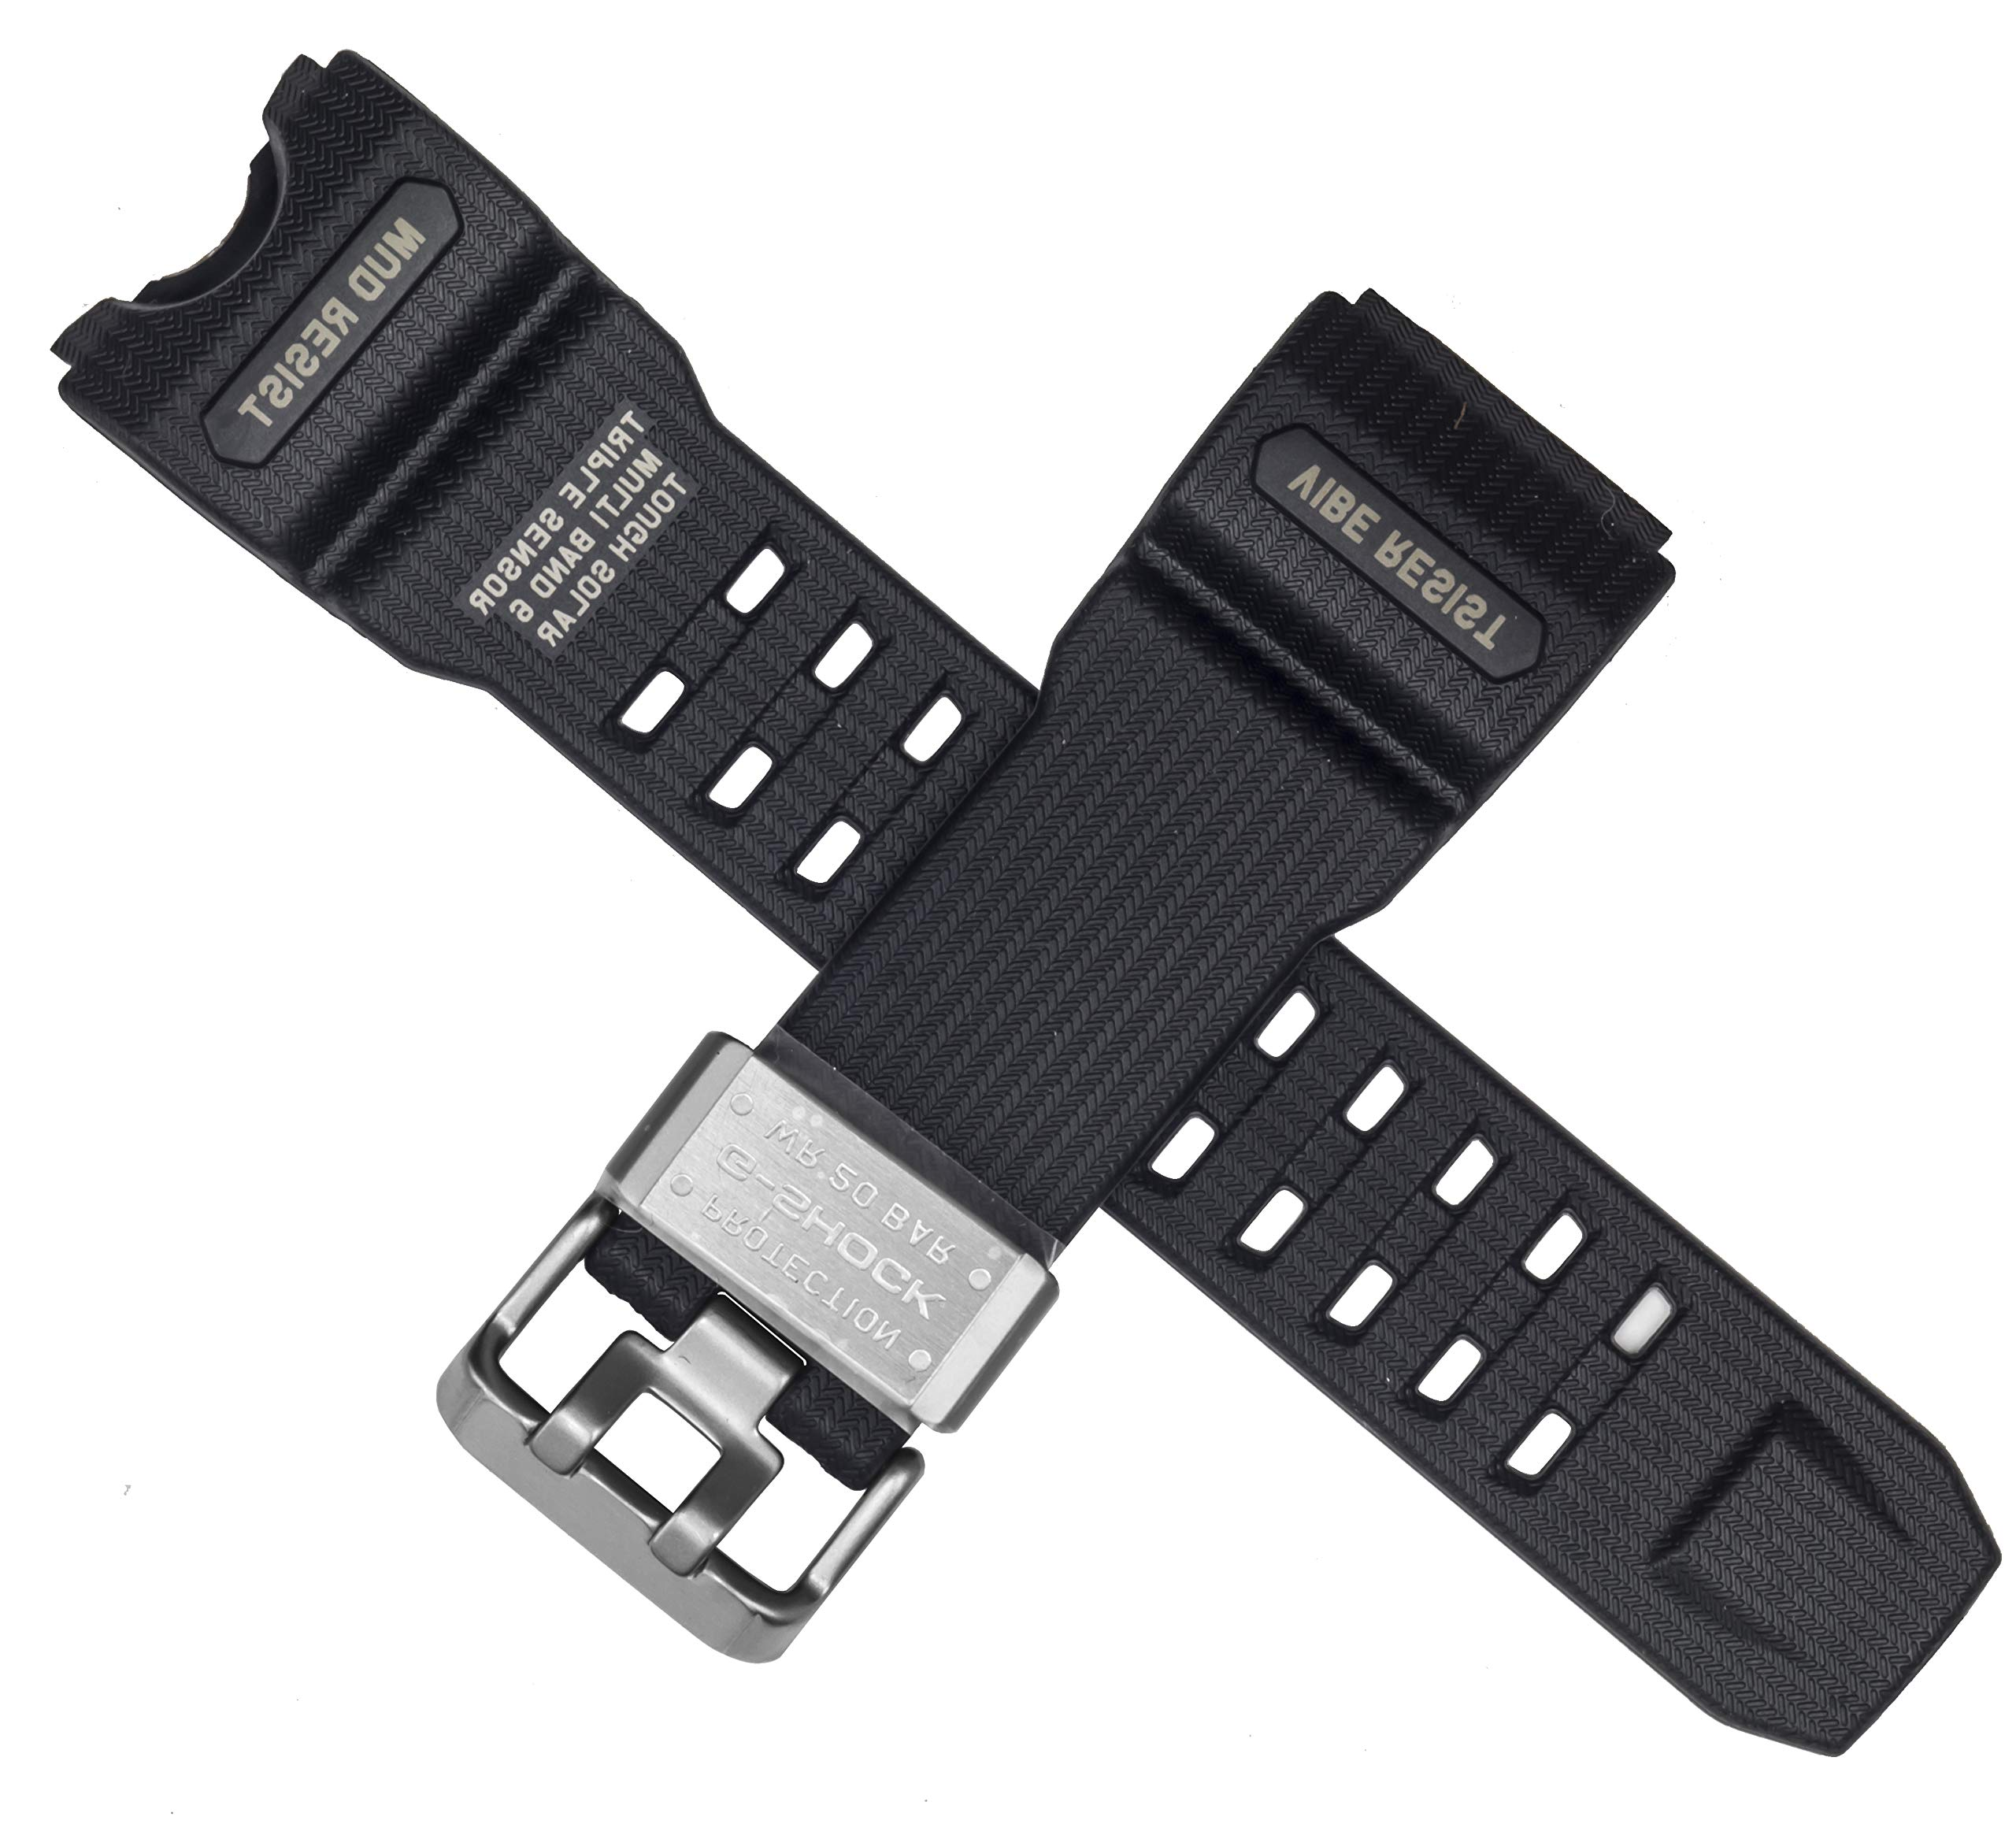 Casio 10504384 Genuine Factory Replacement Black Resin Watch Band fits GWG-1000-1A